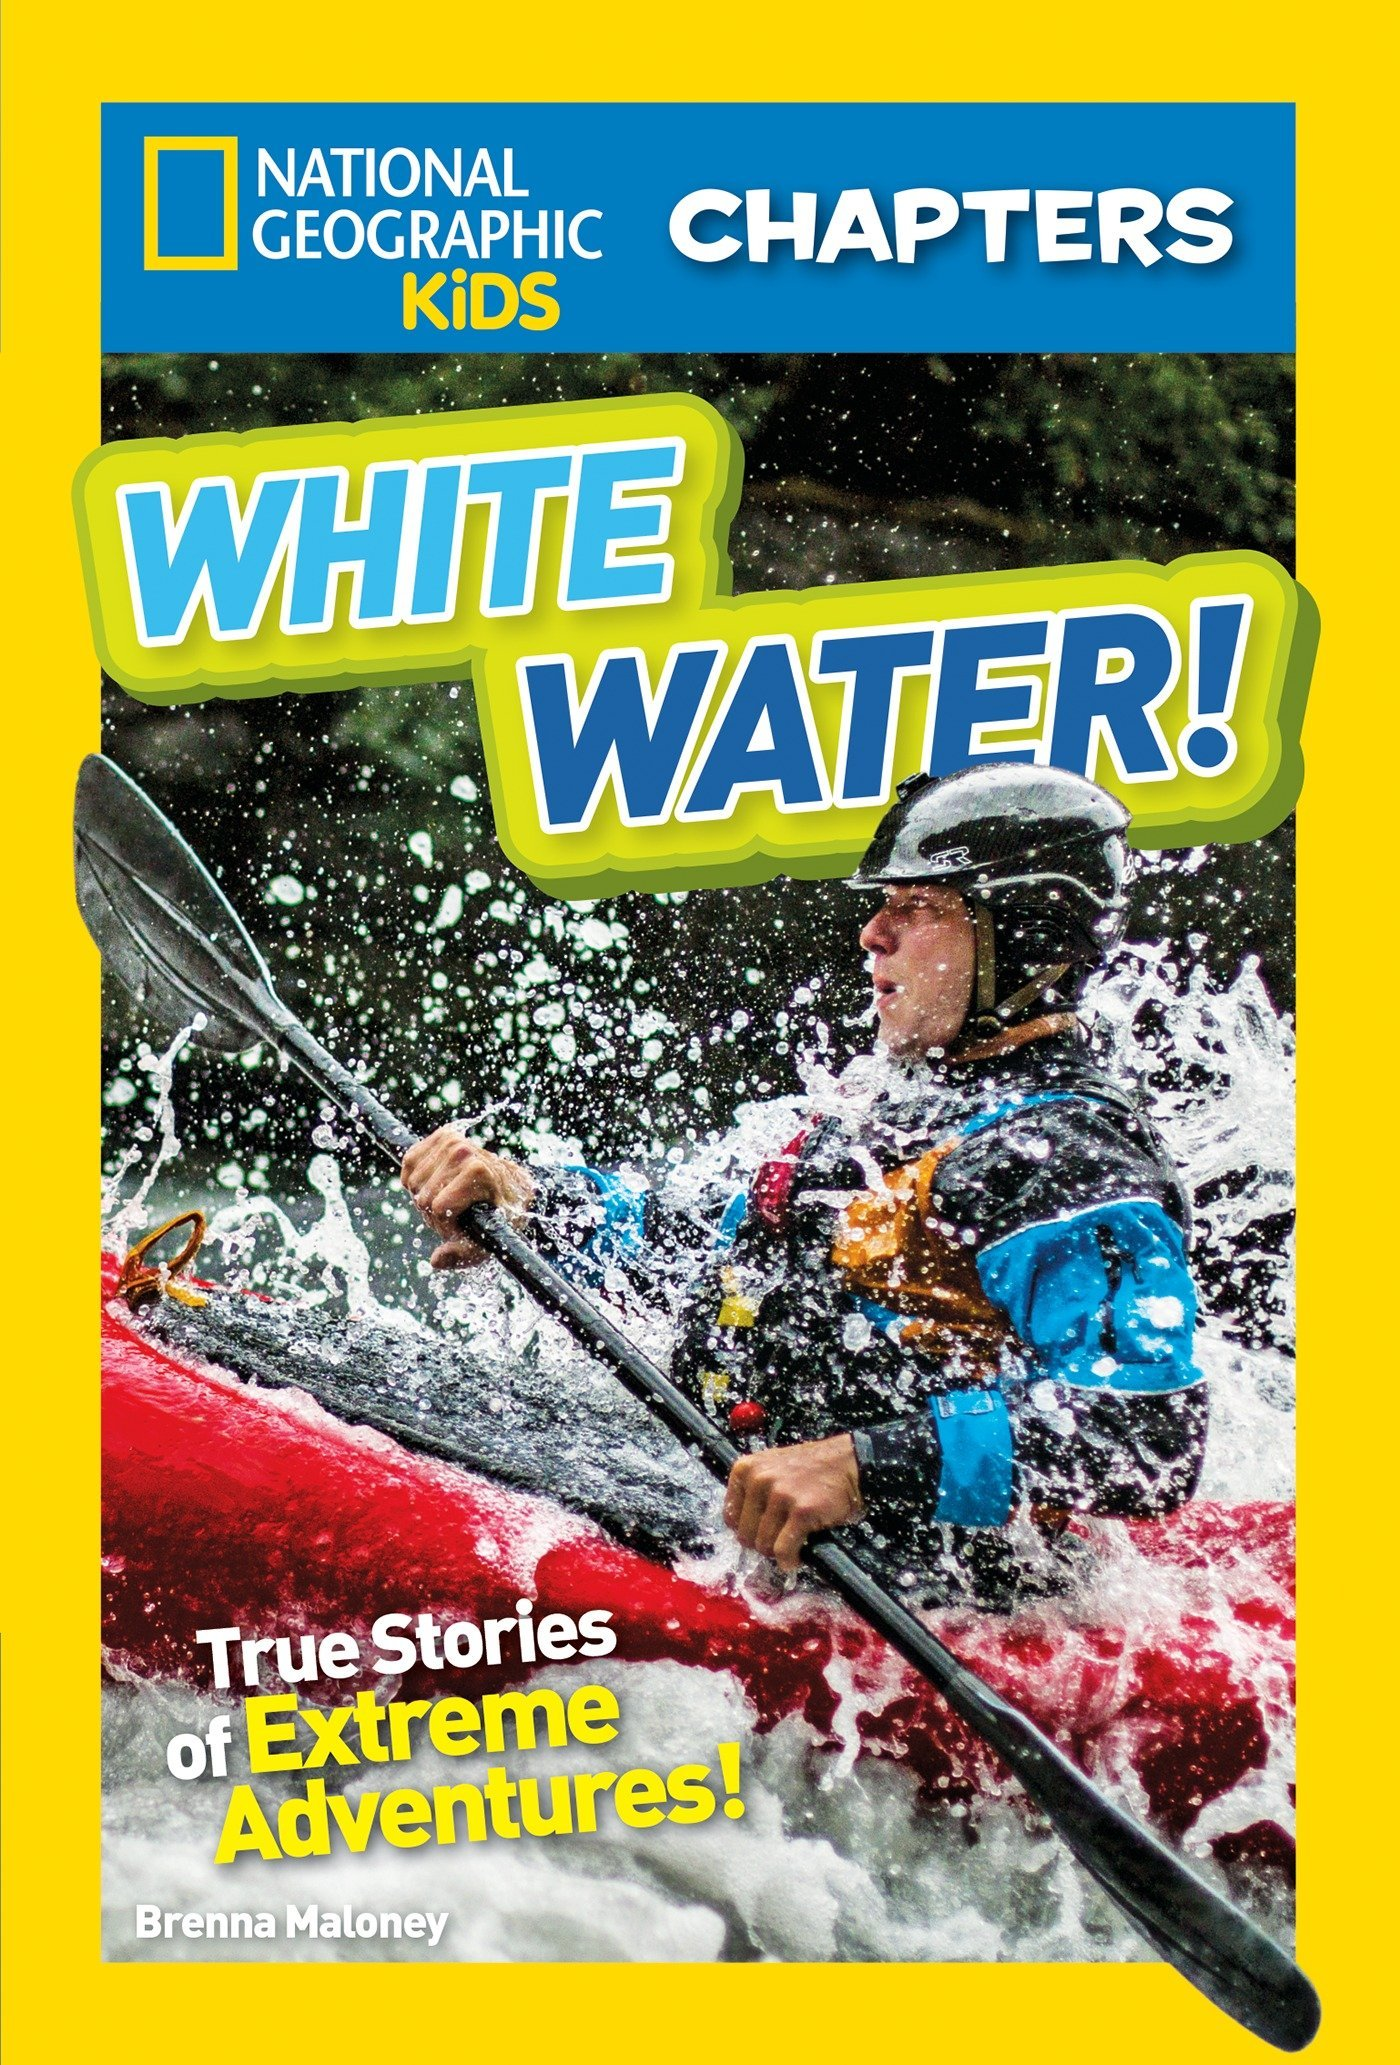 Download National Geographic Kids Chapters: White Water! (NGK Chapters) PDF